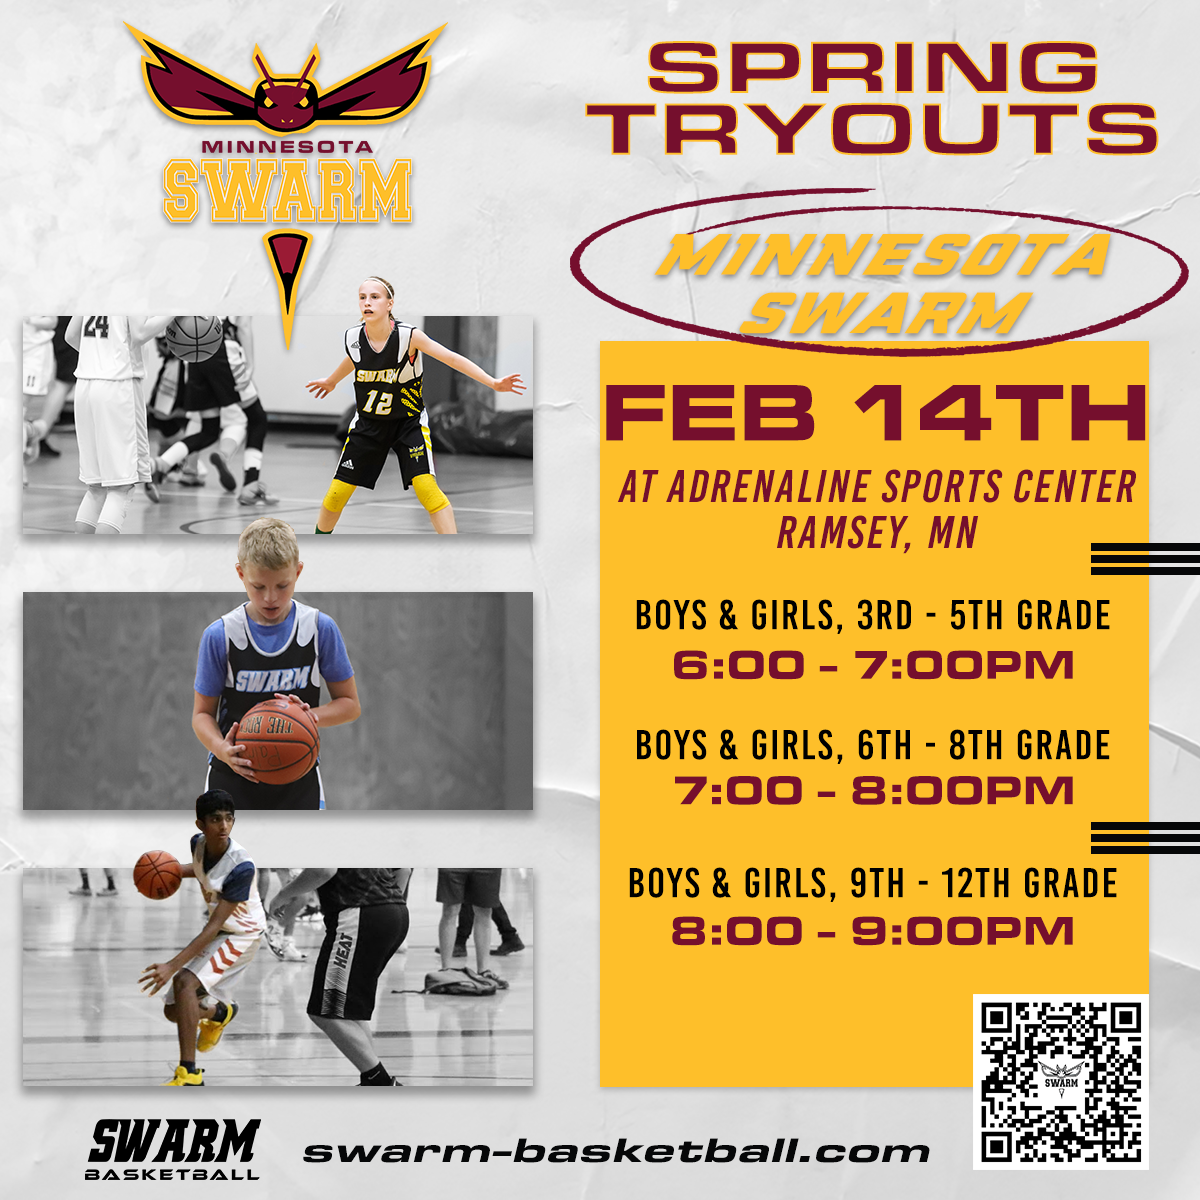 Spring21Tryouts_Minnesota